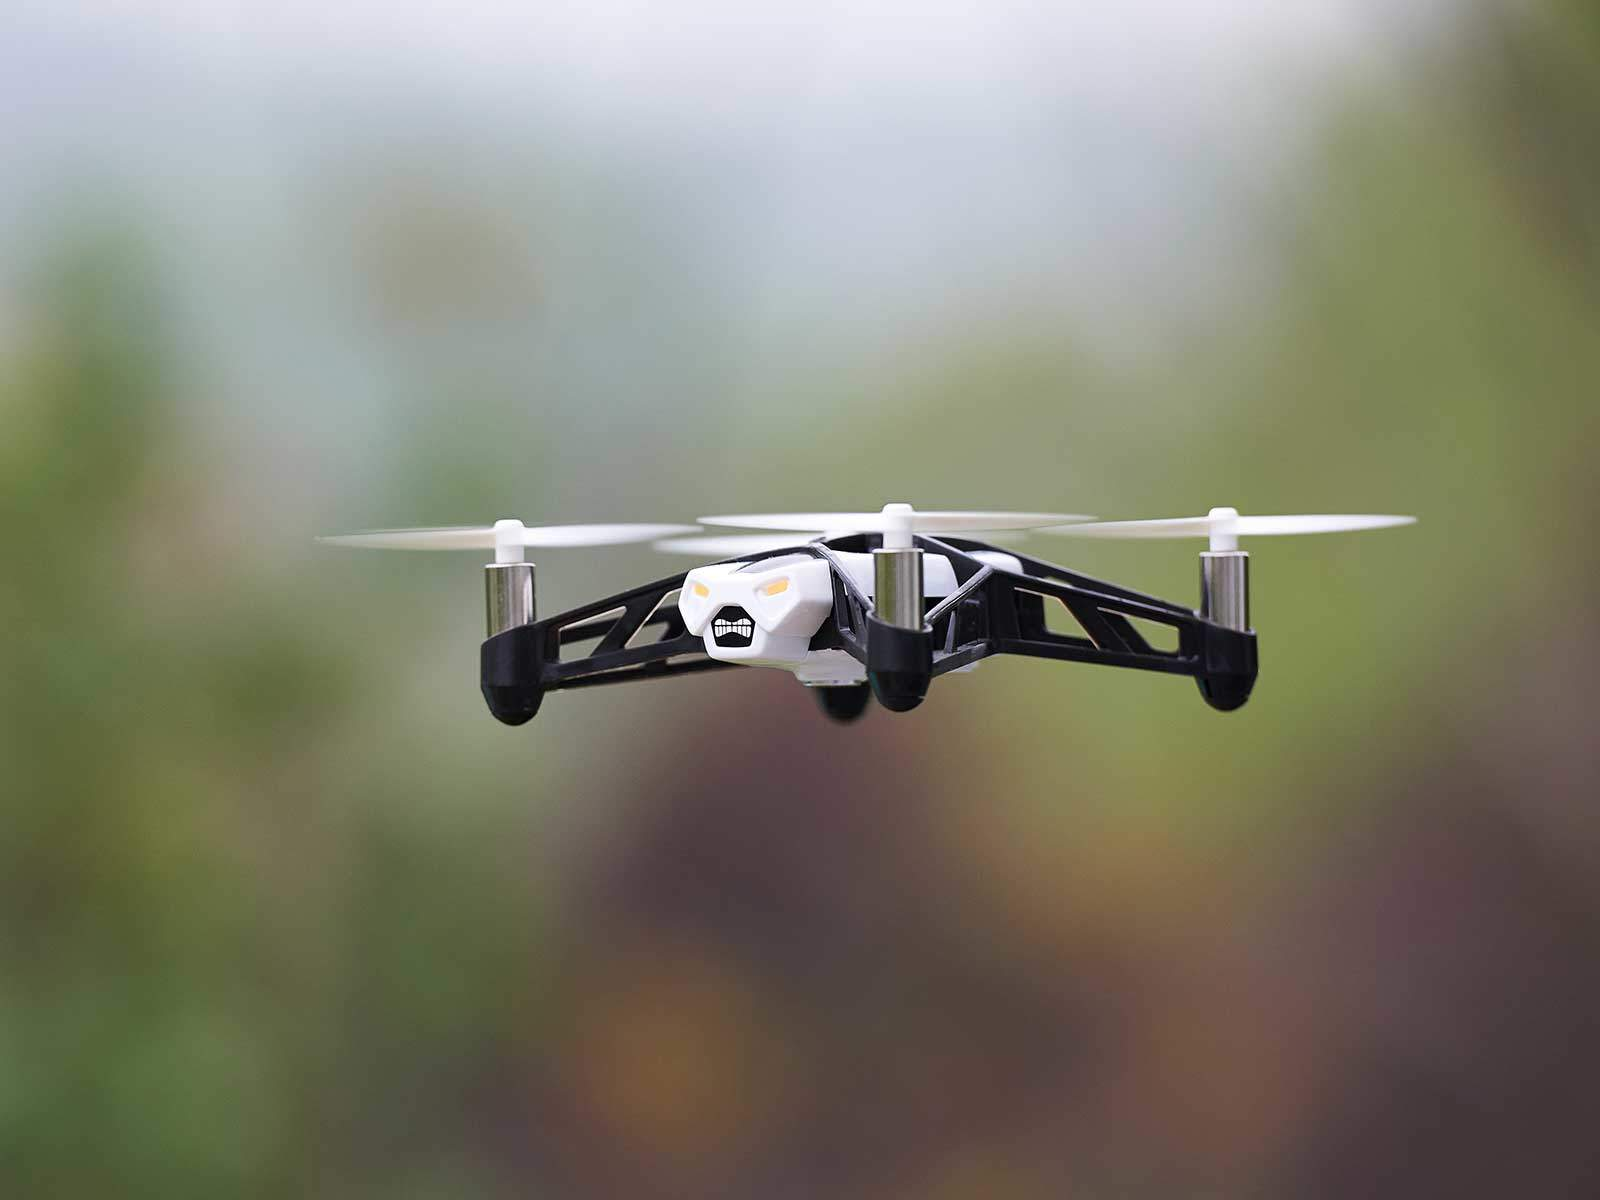 5 remarkable facts about mini drones or miniature drones